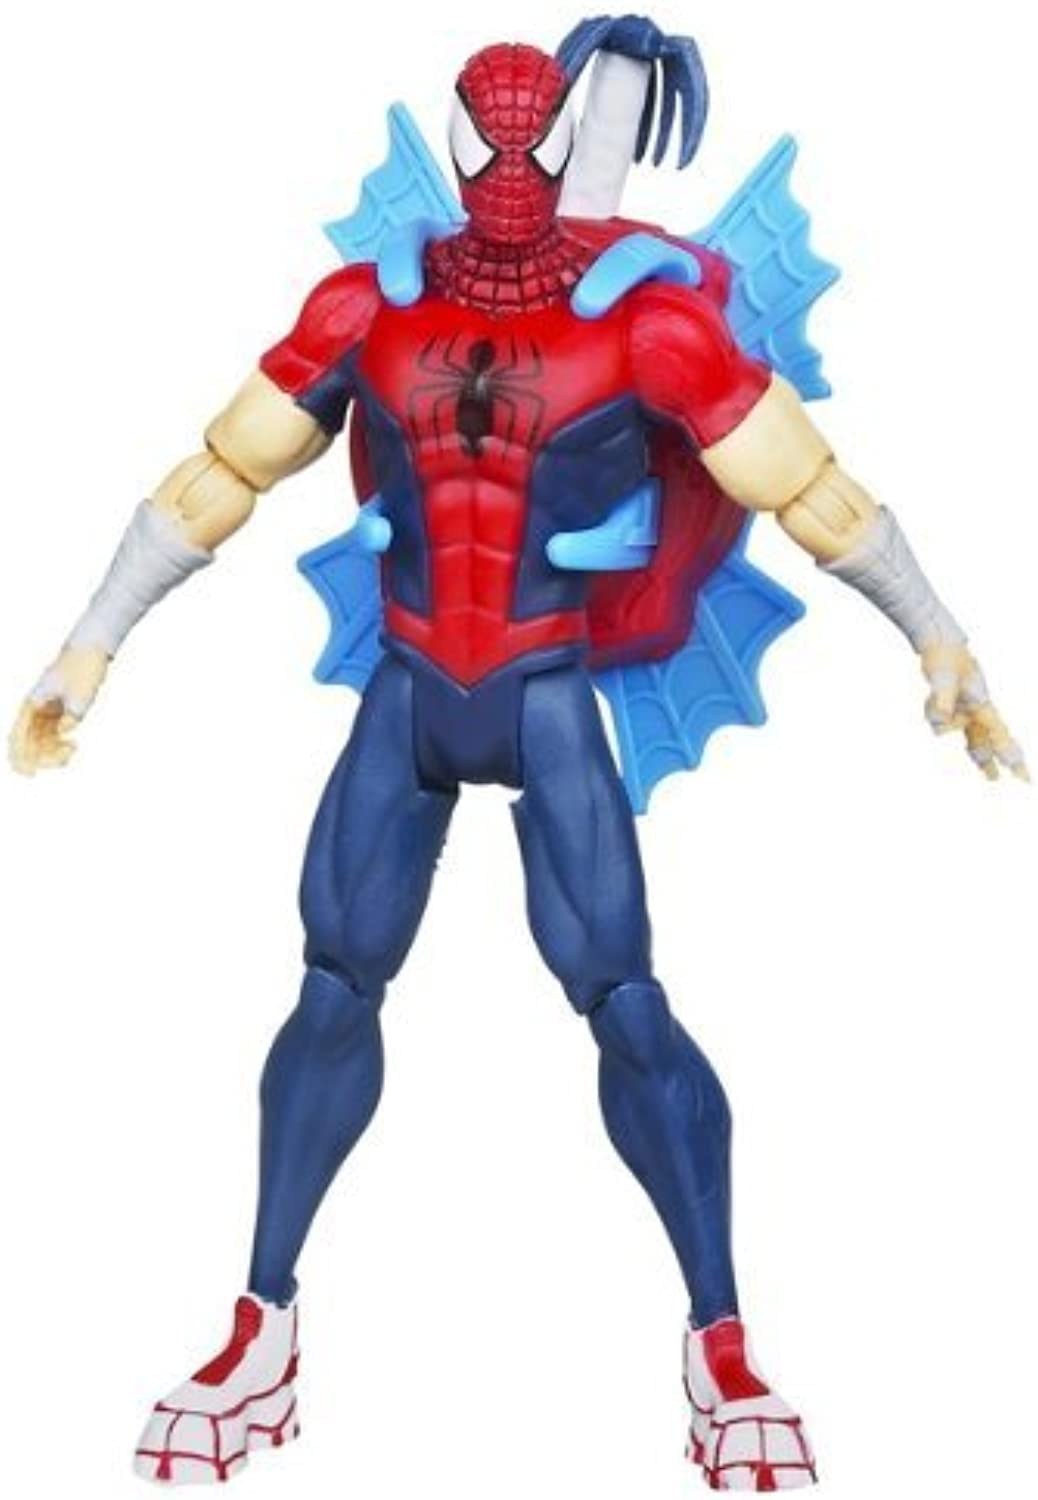 The Amazing SpiderMan 2012 Comic Series Grappling Hook SpiderMan 3.75 inch Action Figure by Hasbro Inc